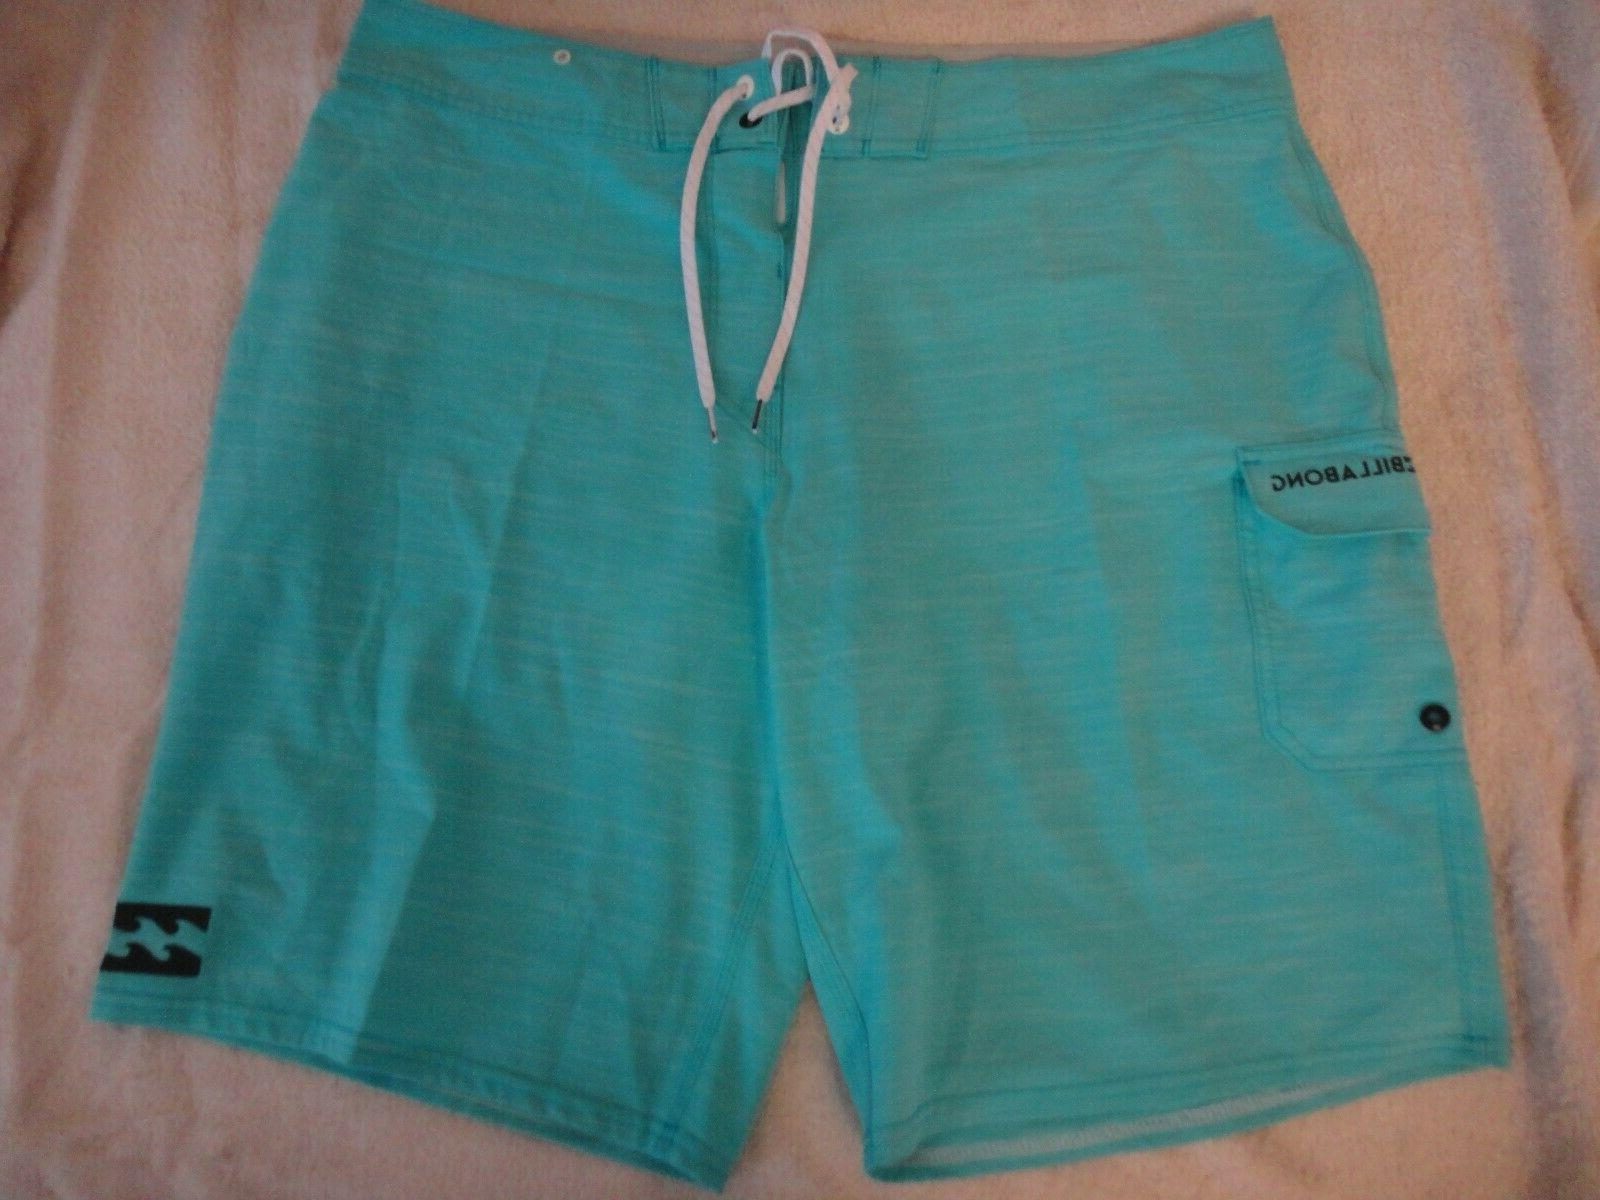 platinum x all day board shorts 36